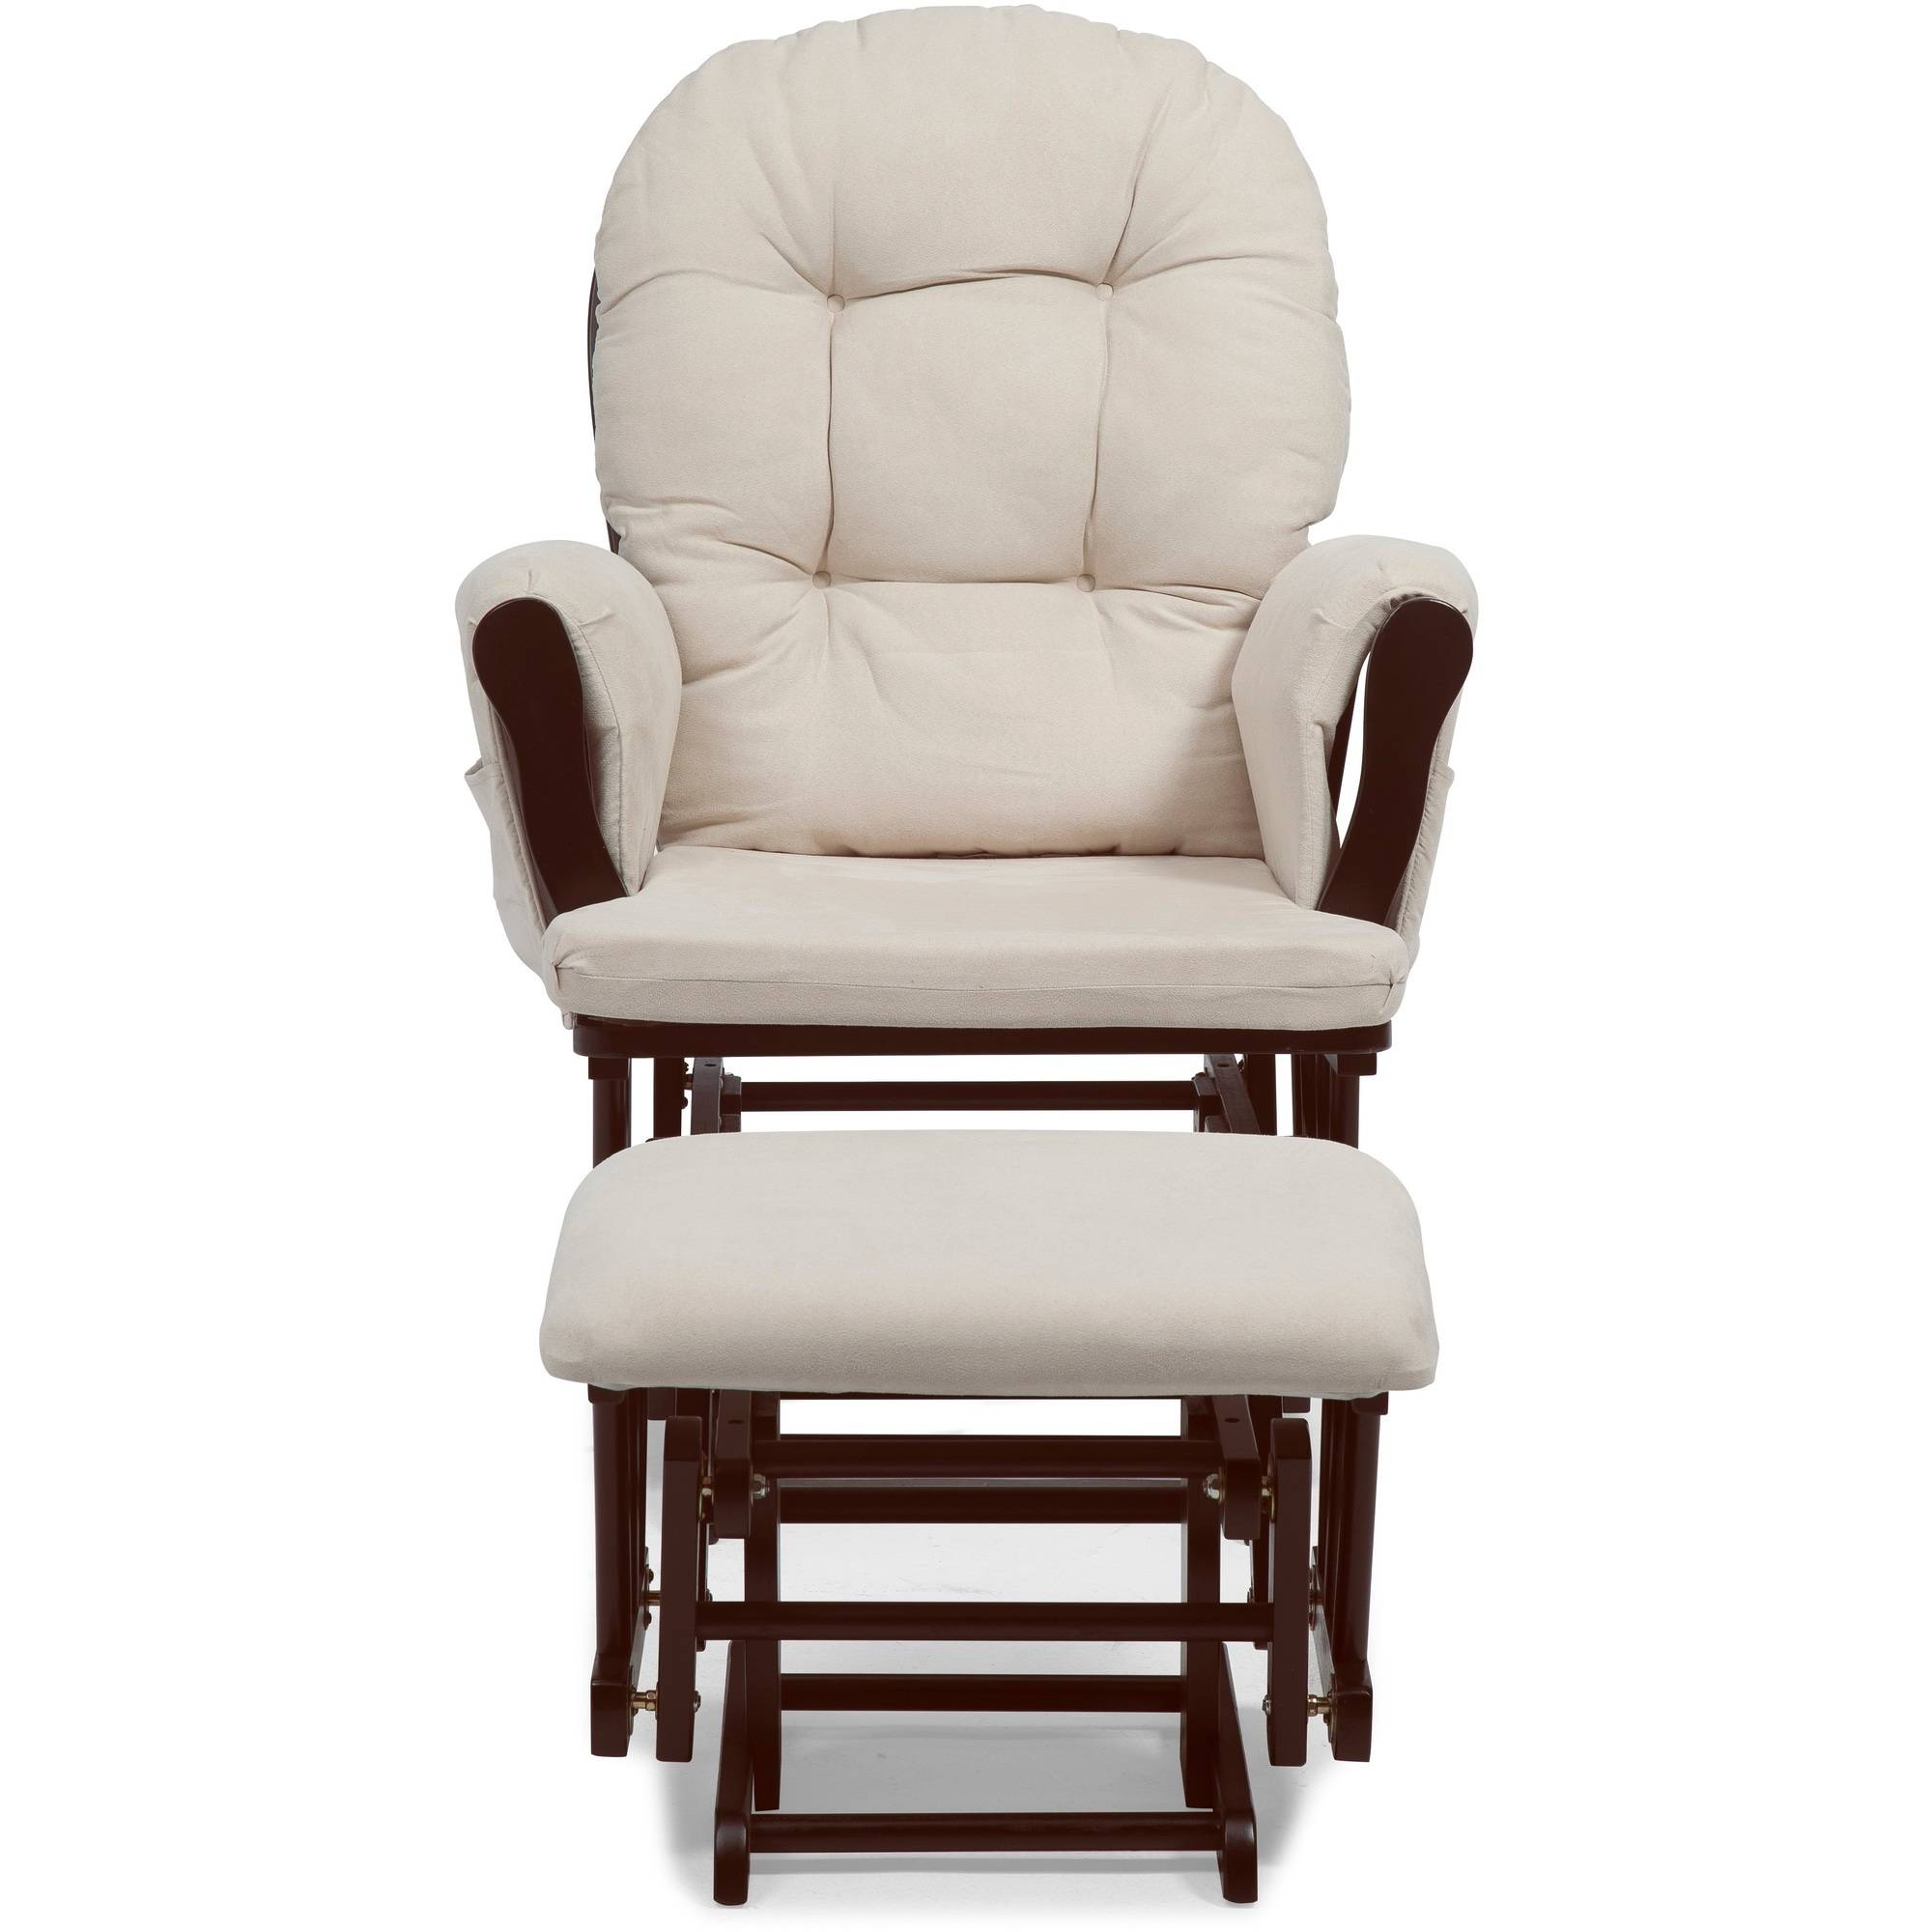 Storkcraft Hoop Glider And Ottoman White With Beige Cushions